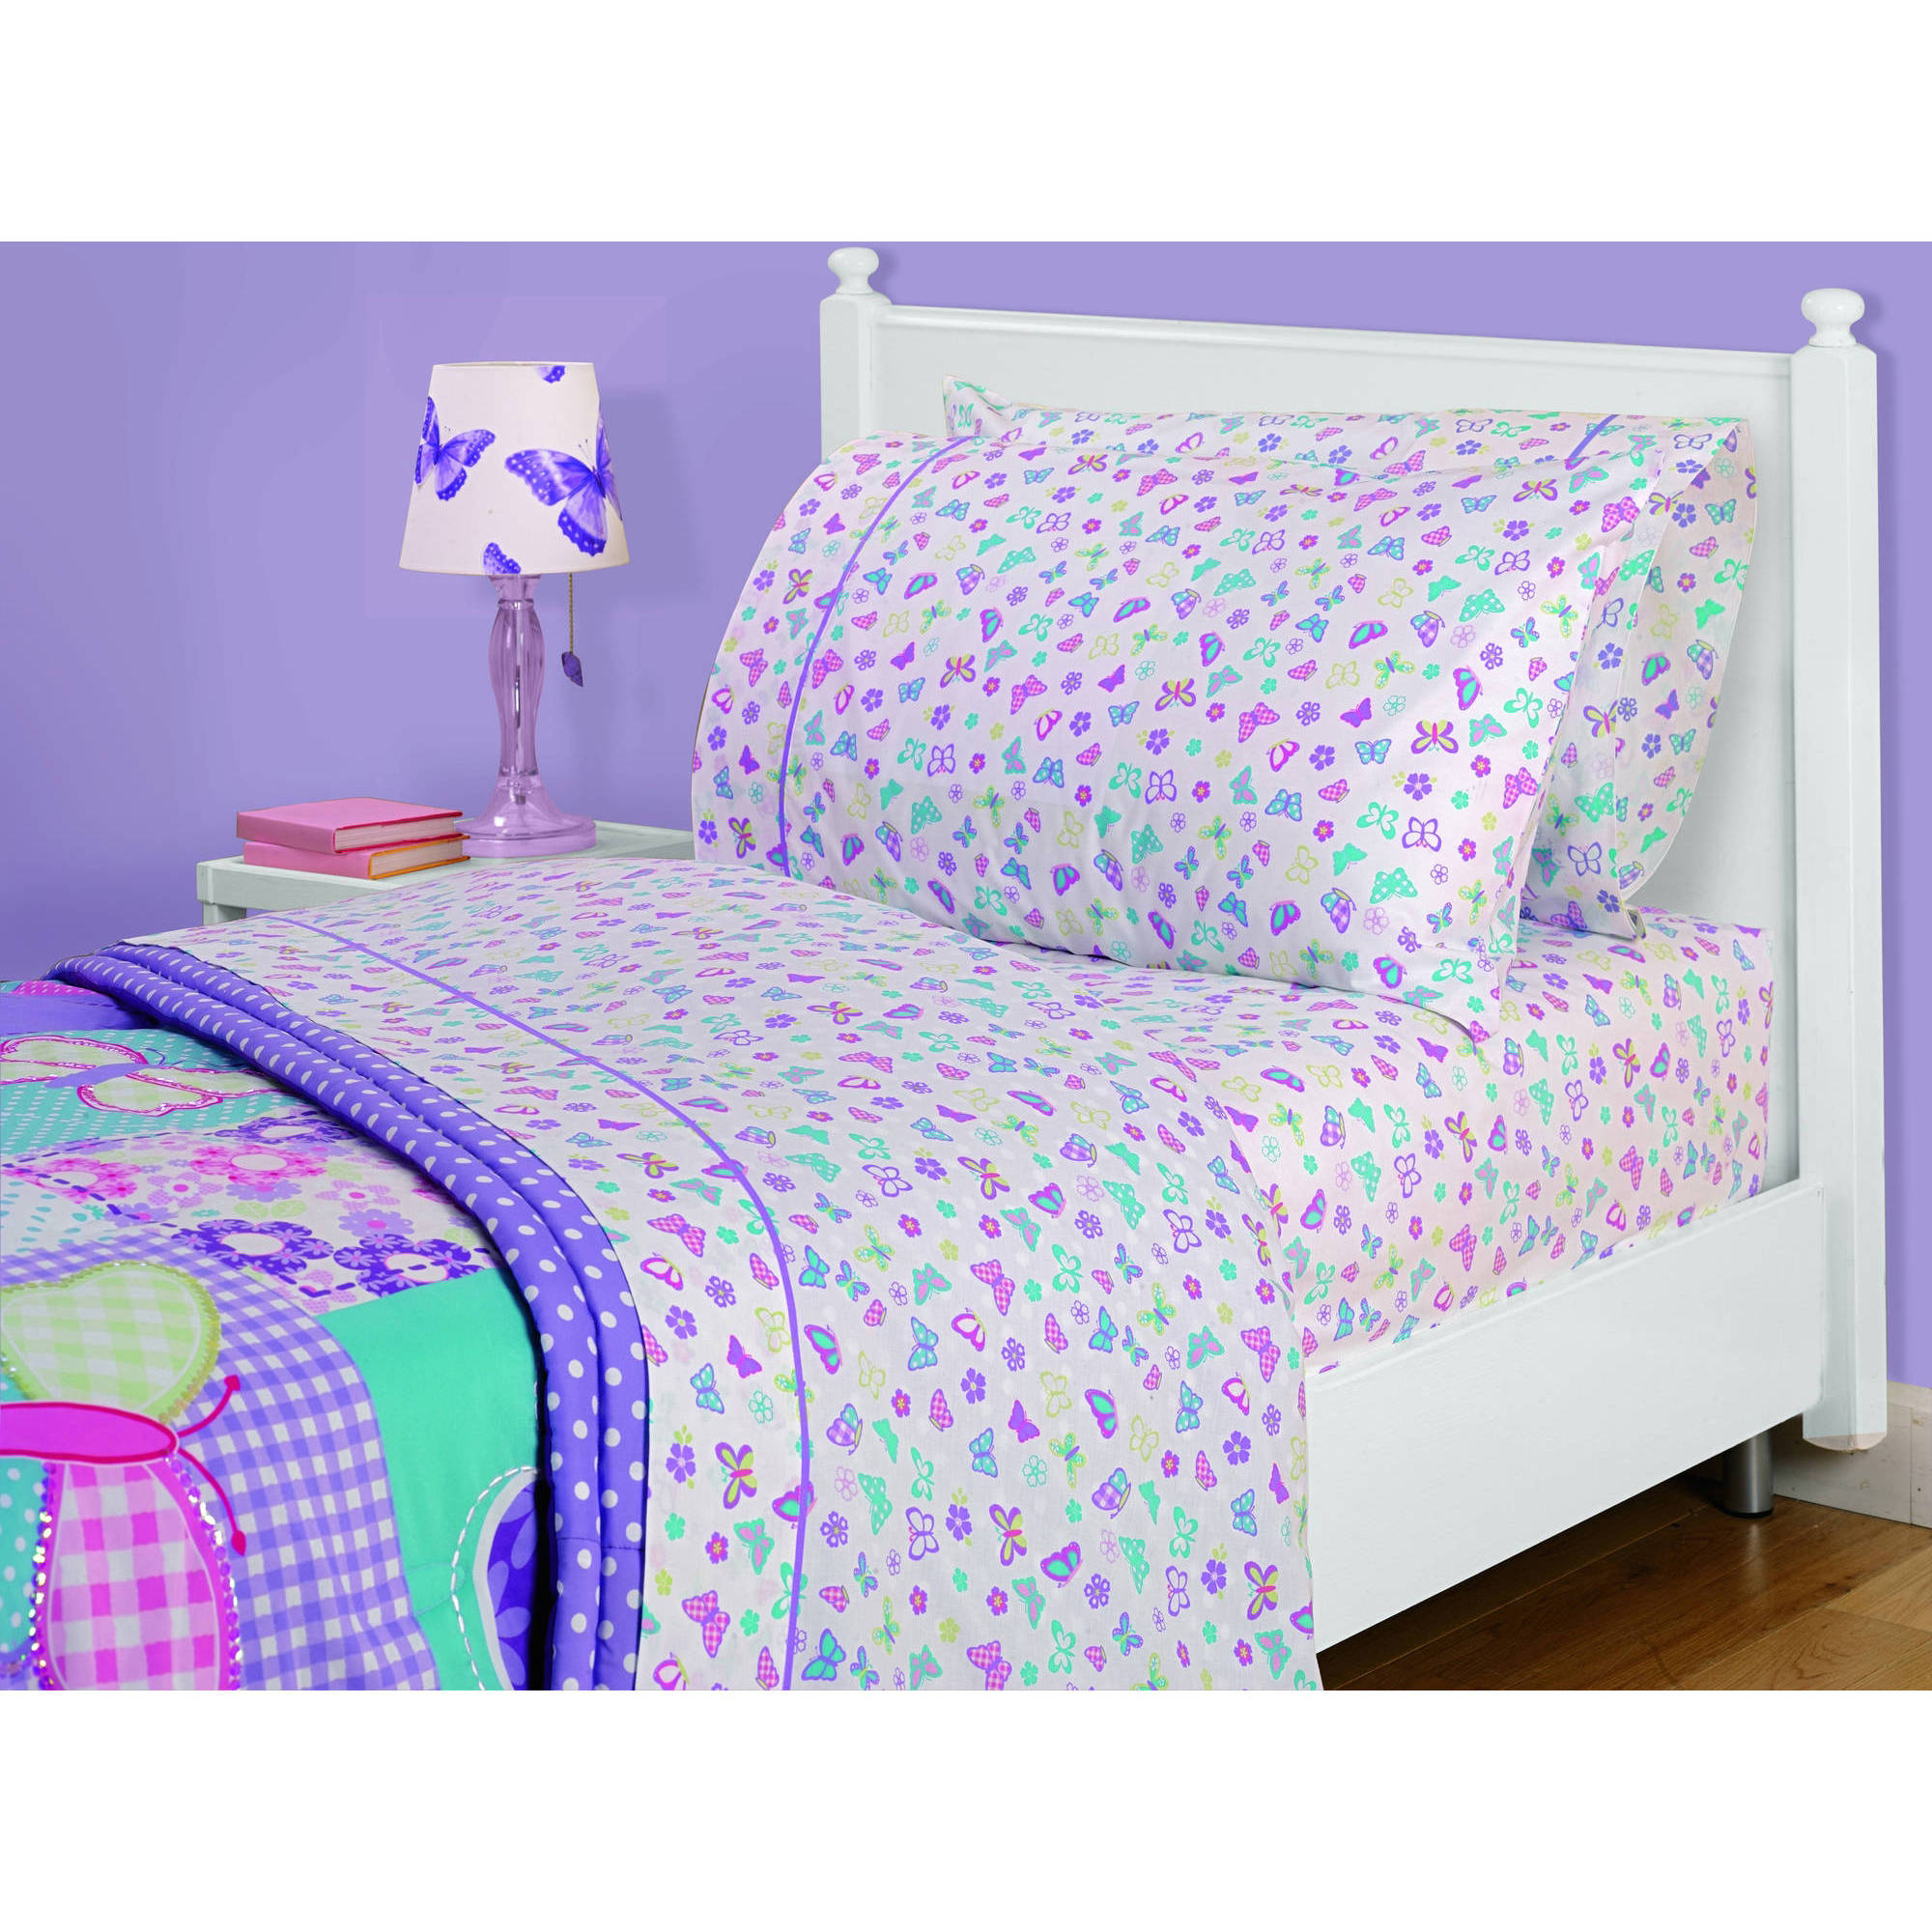 Mainstays American Kids Butterfly Patches 3-Piece Sheet Set, Twin